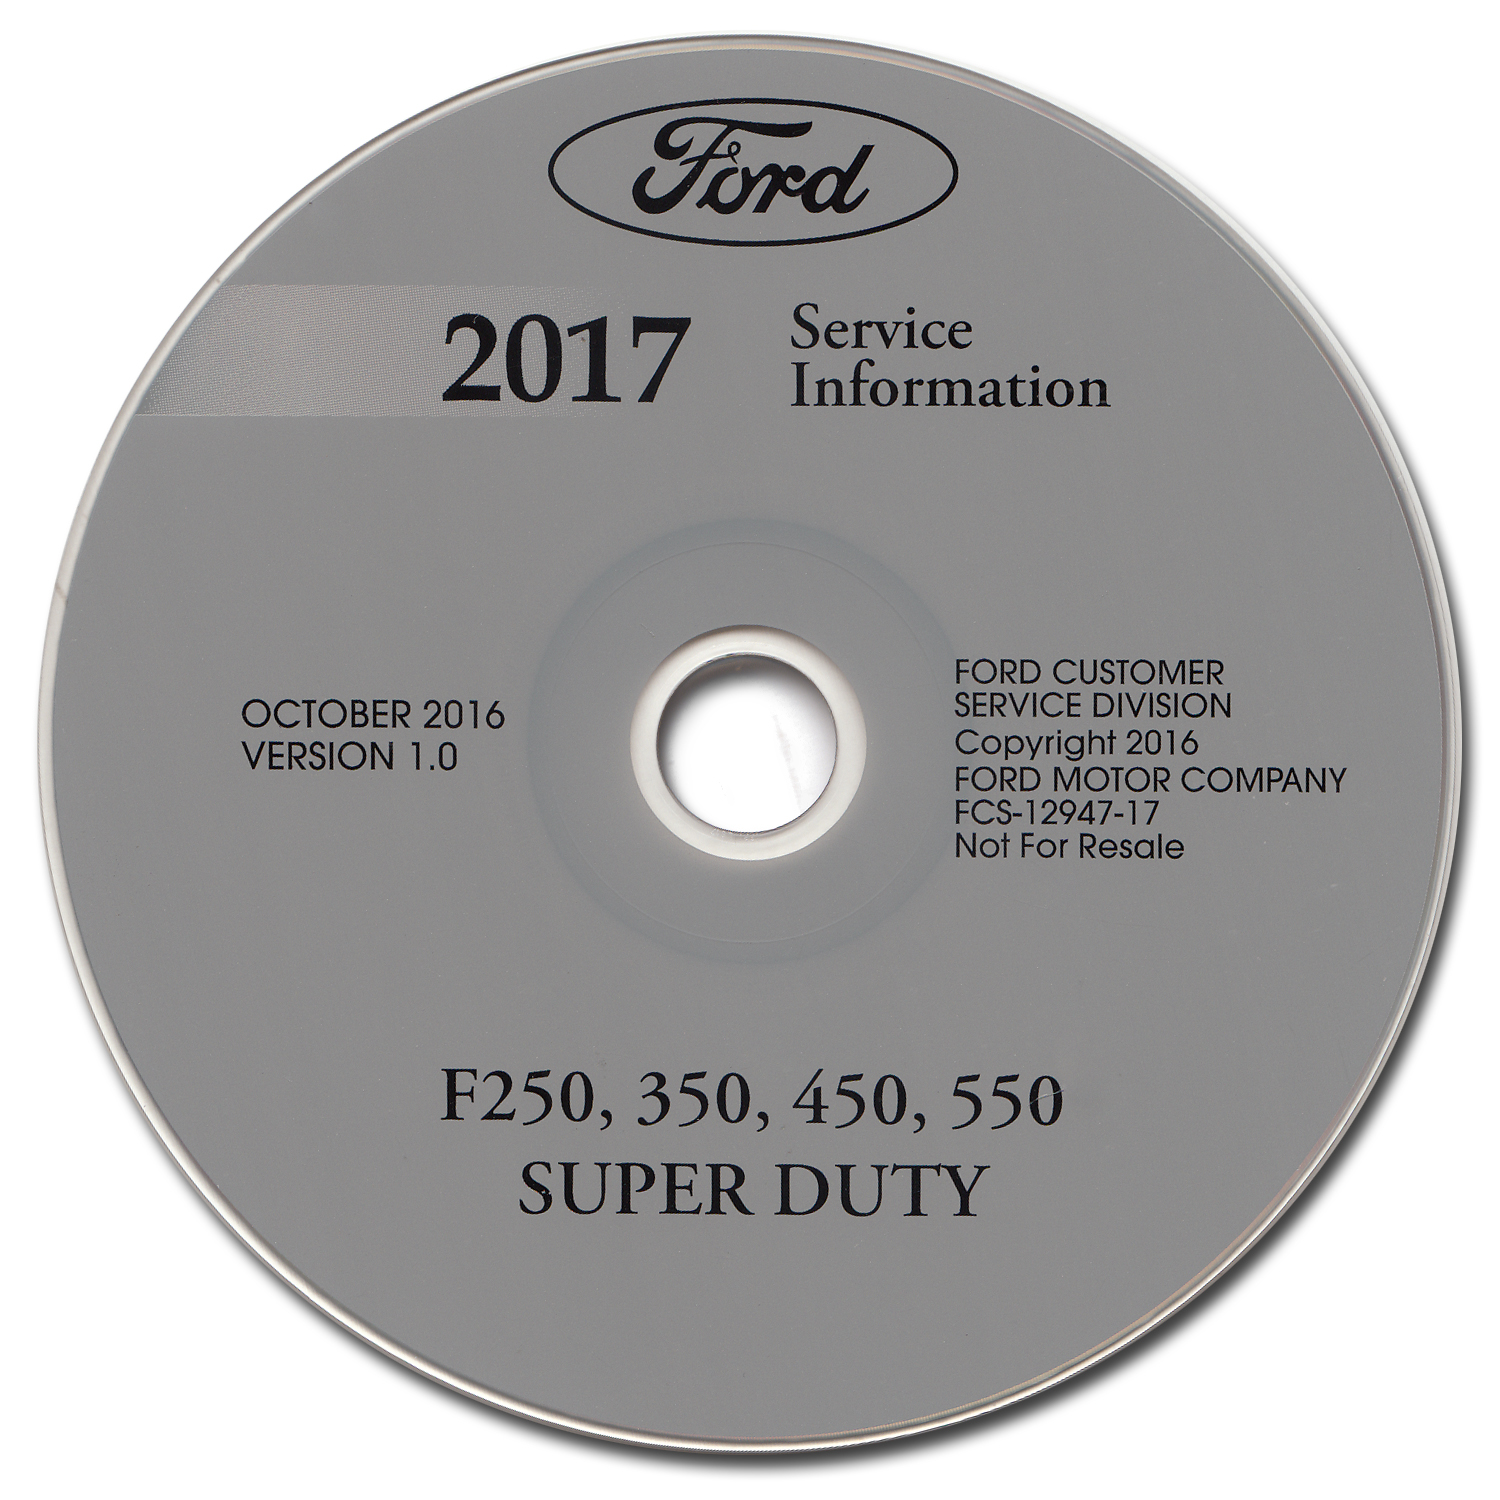 2017 Ford F250-F550 Super Duty Repair Shop Manual on CD-ROM Original